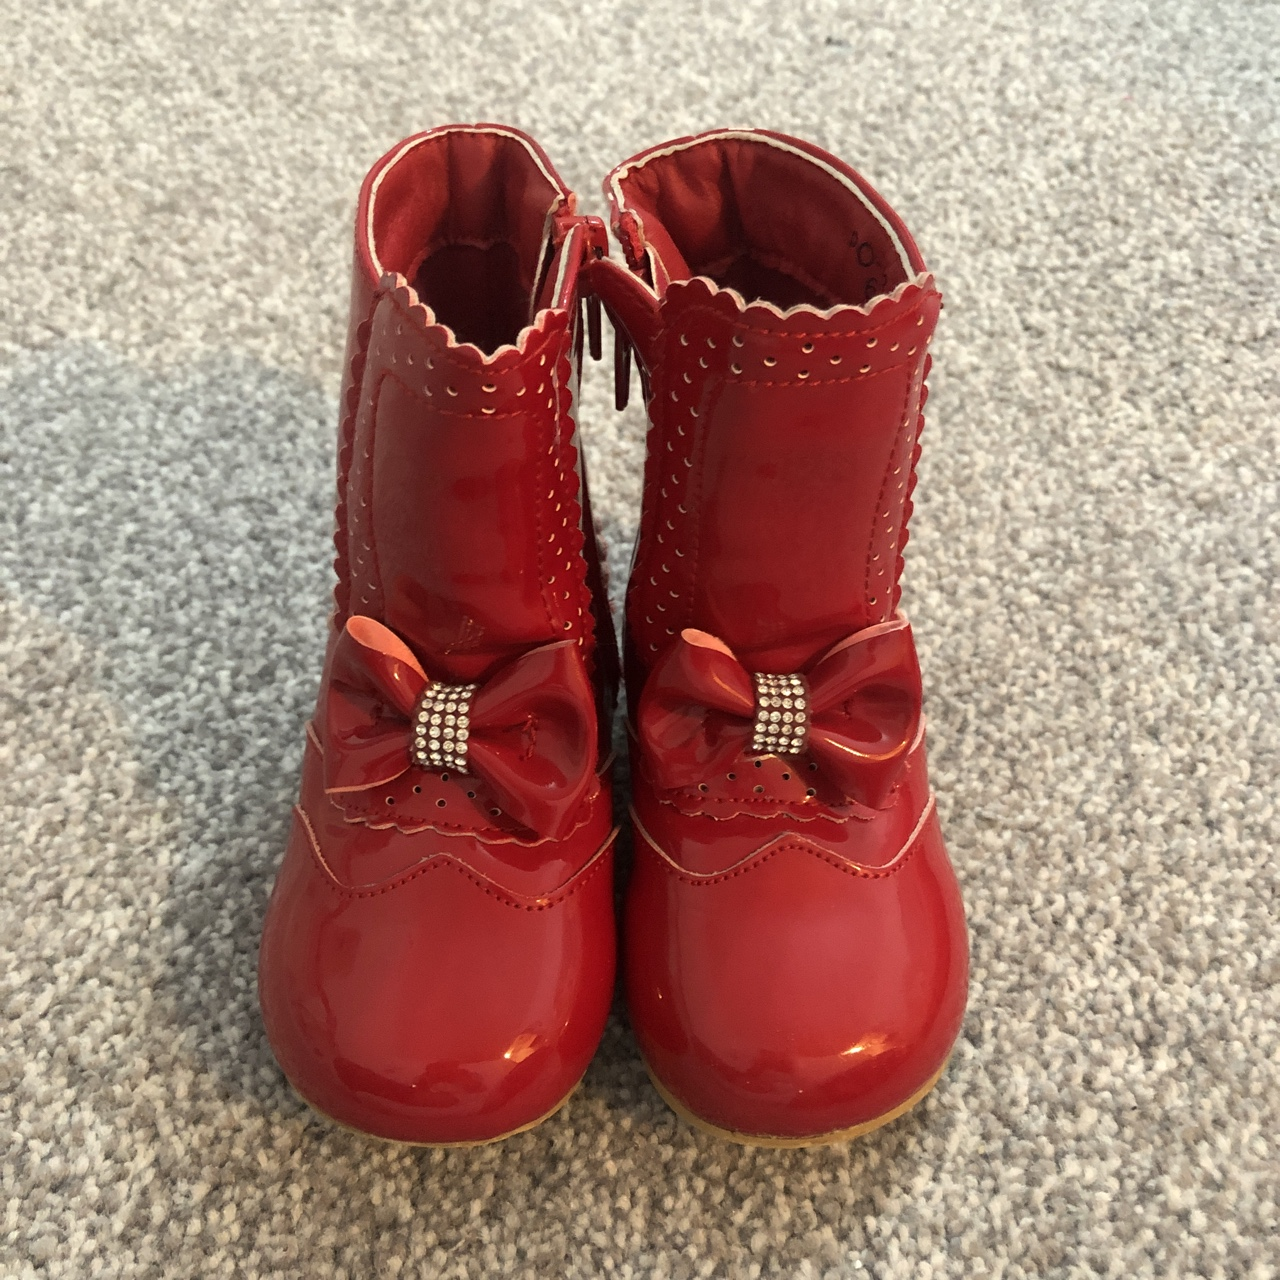 Girls red boots with diamanté bows